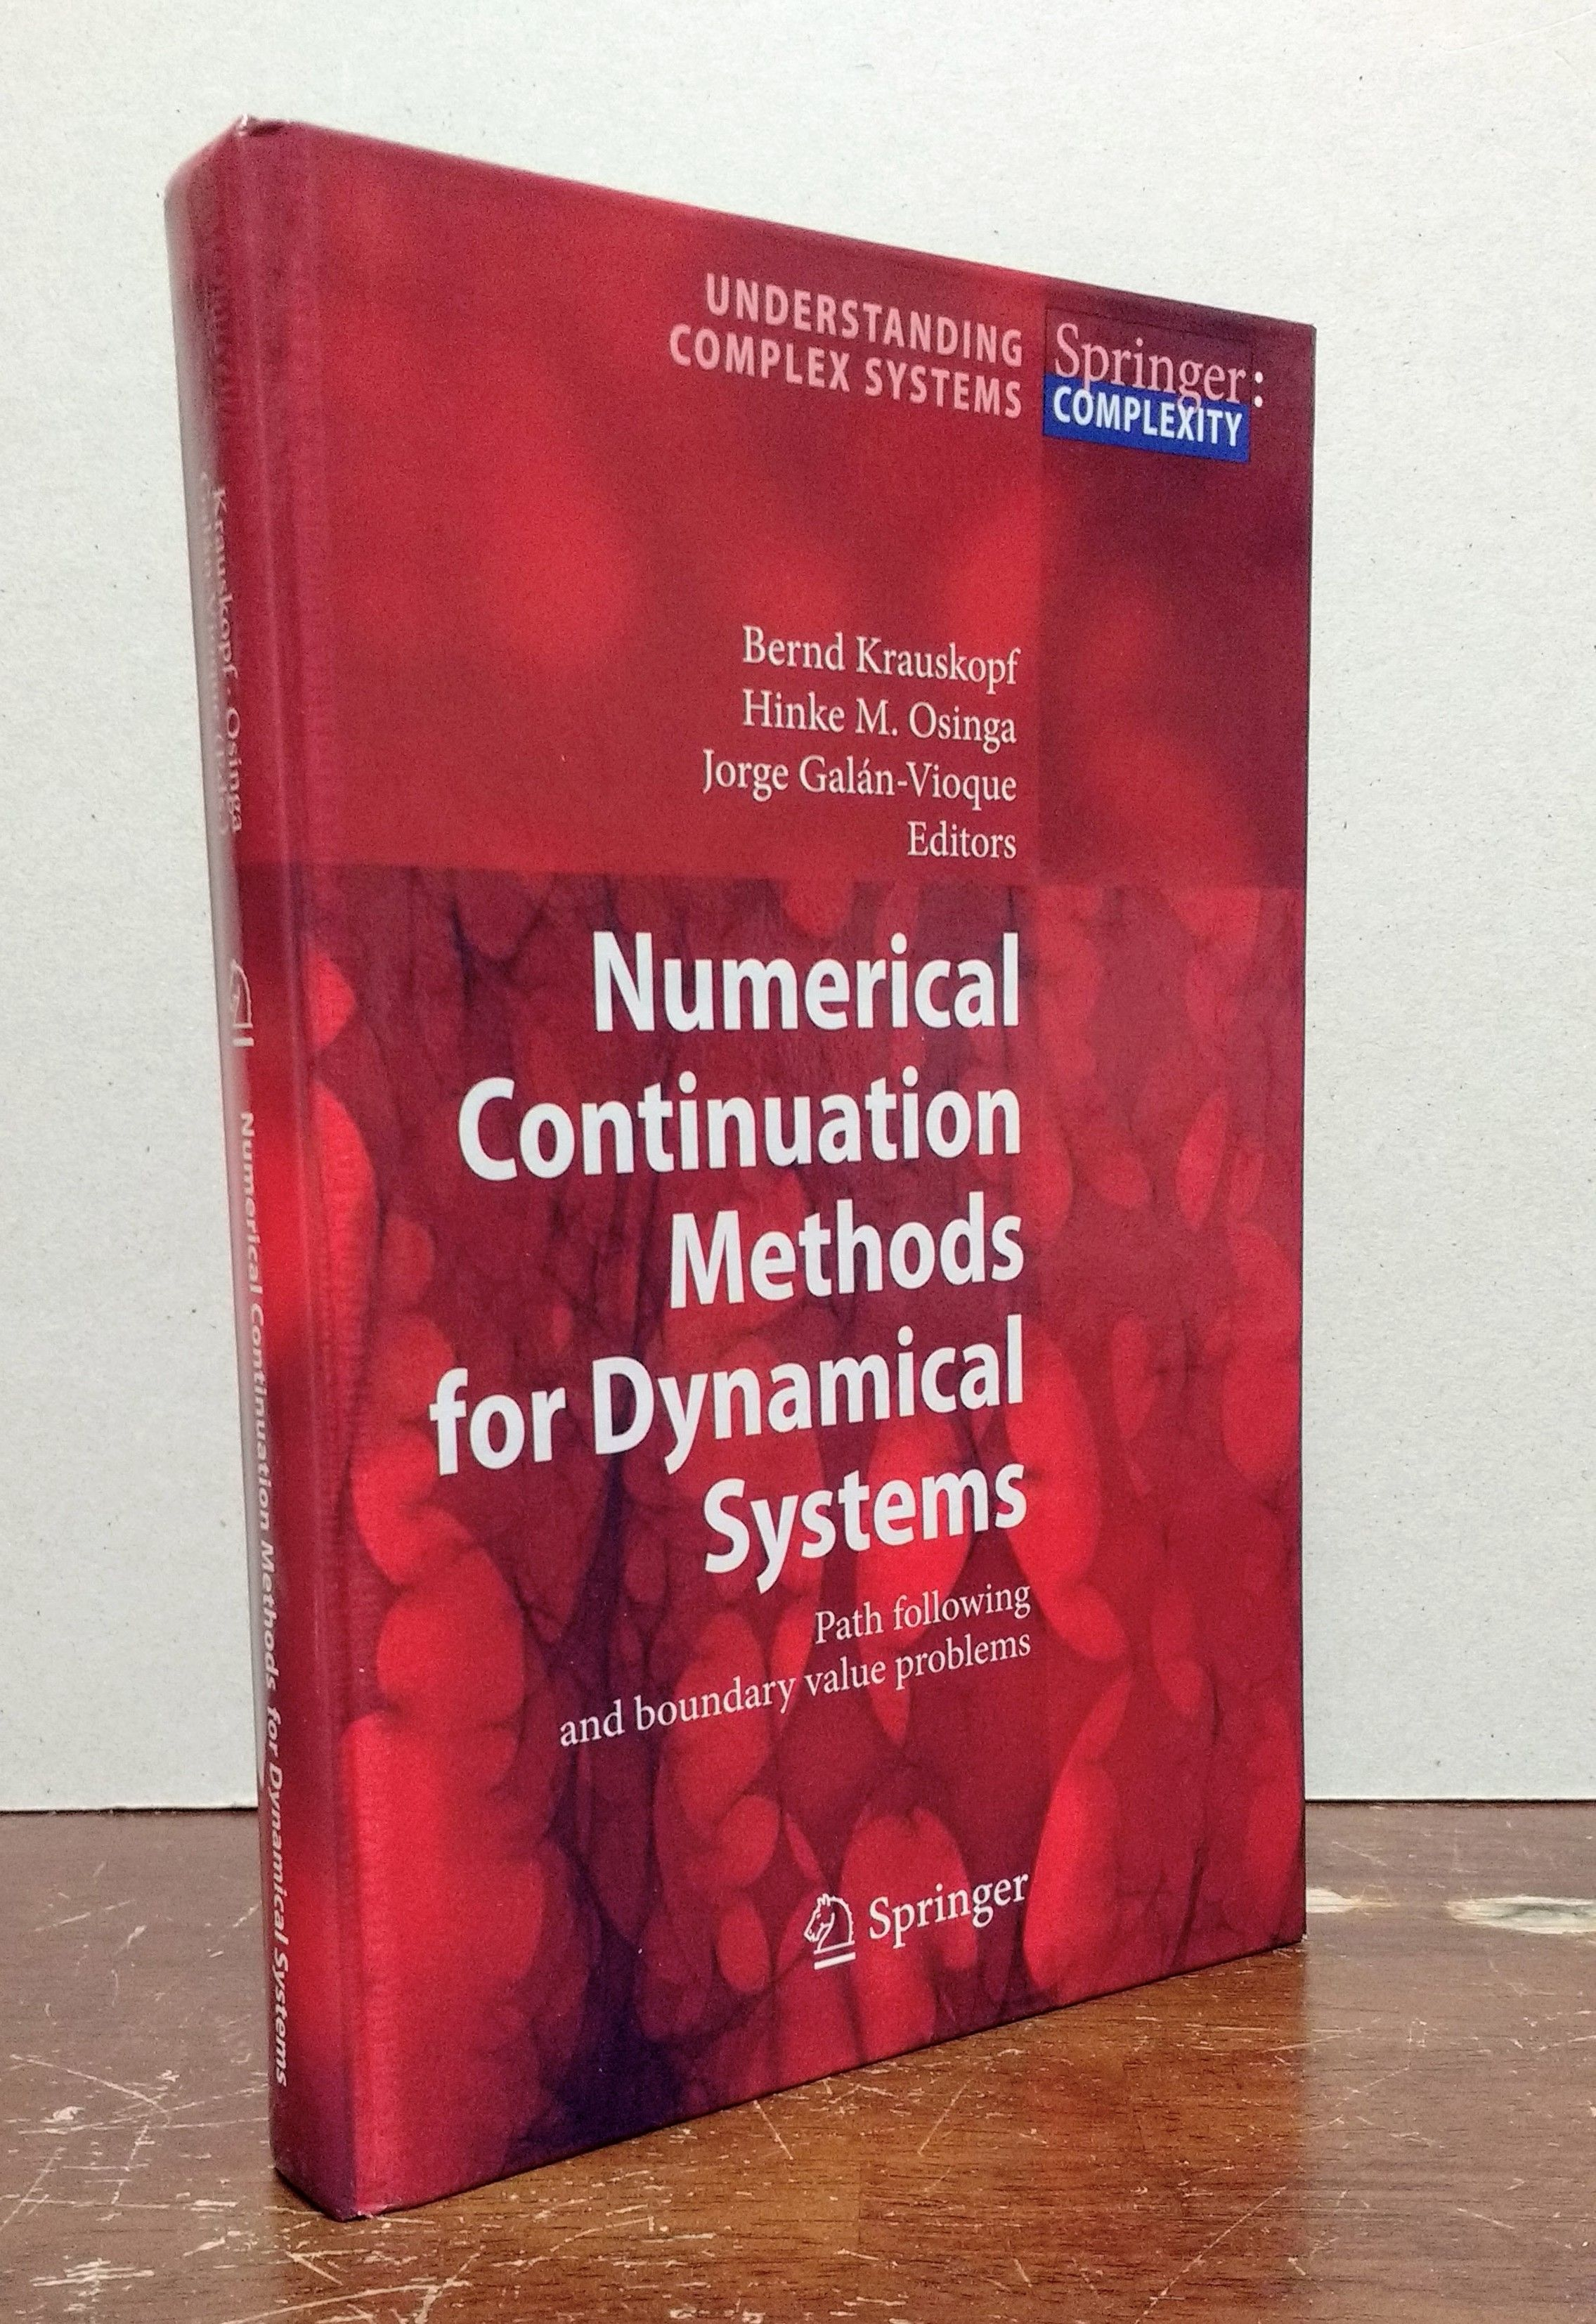 Numerical Continuation Methods for Dynamical Systems: Path following and boundary value problems (Understanding Complex Systems), Krauskopf, Bernd [Editor]; Osinga, Hinke M. [Editor]; Galan-Vioque, Jorge [Editor];